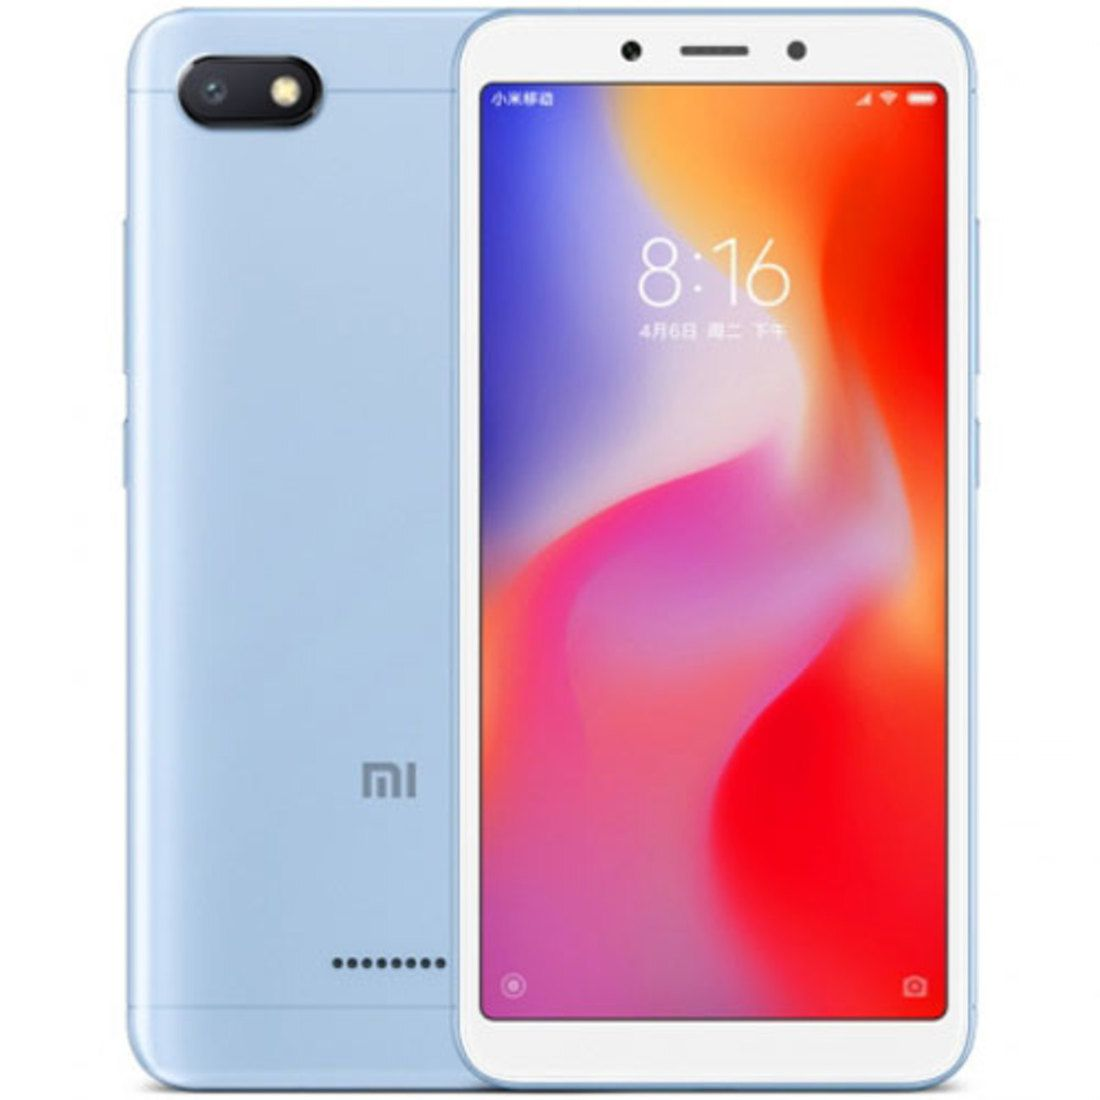 Smartphone Redmi 6A 2GB Ram Tela 5.45 16GB Camera 13MP - Azul  - PAGDEPOIS